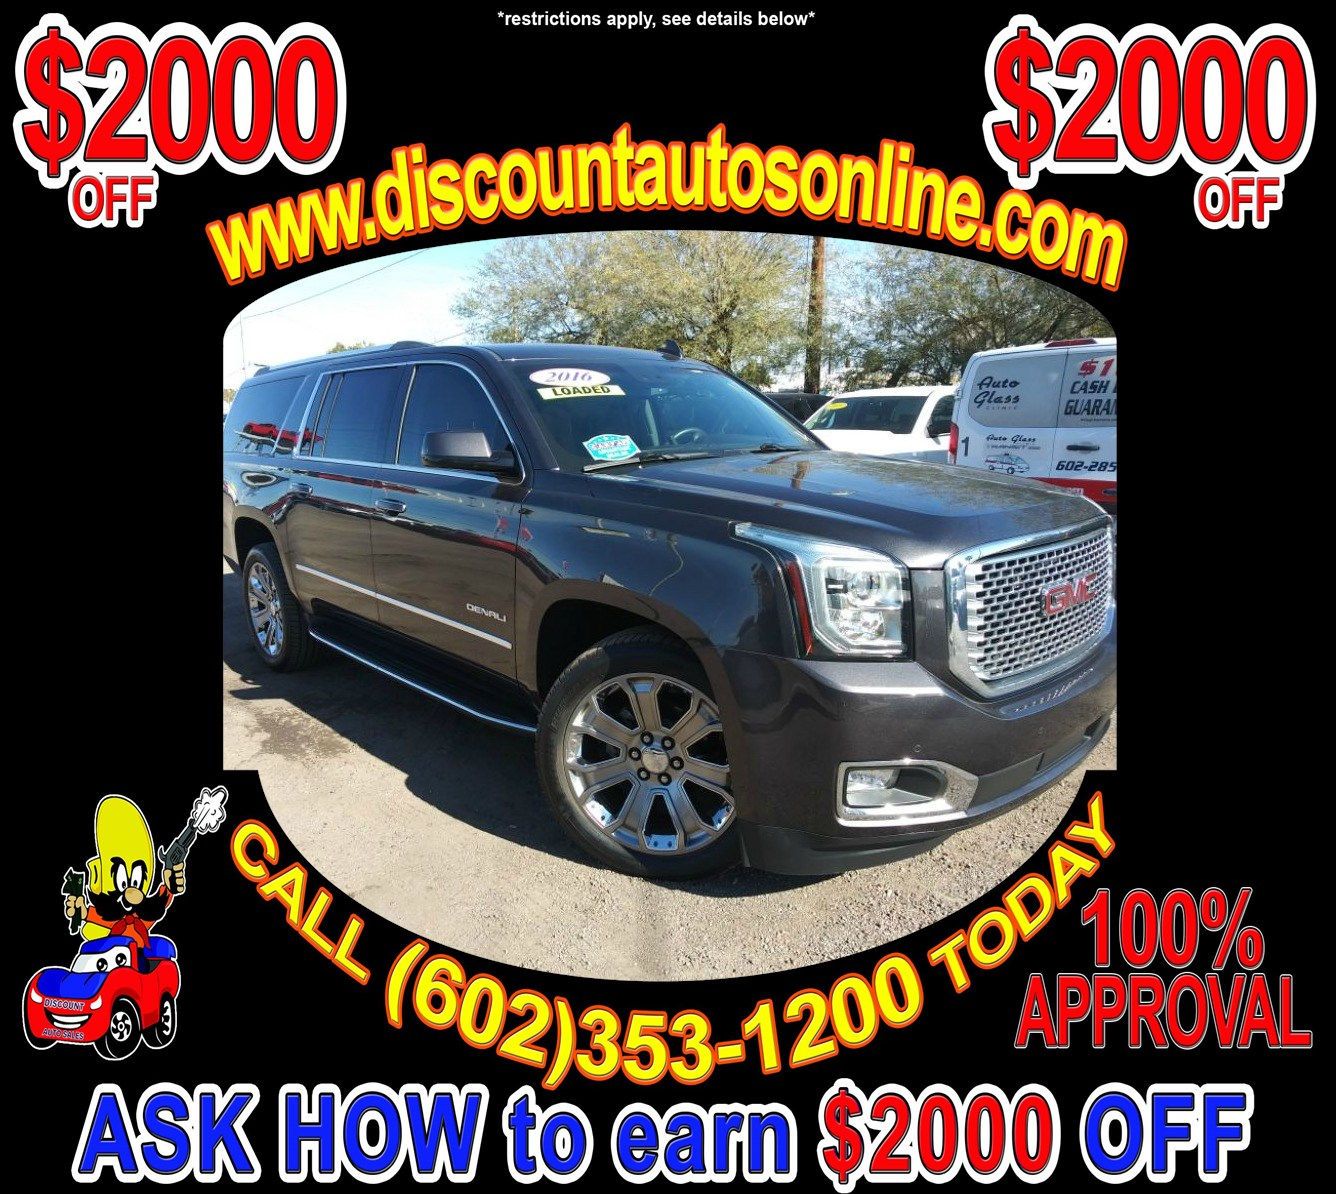 2016 GMC Yukon XL 4WD 4X4 Leather SUV Denali